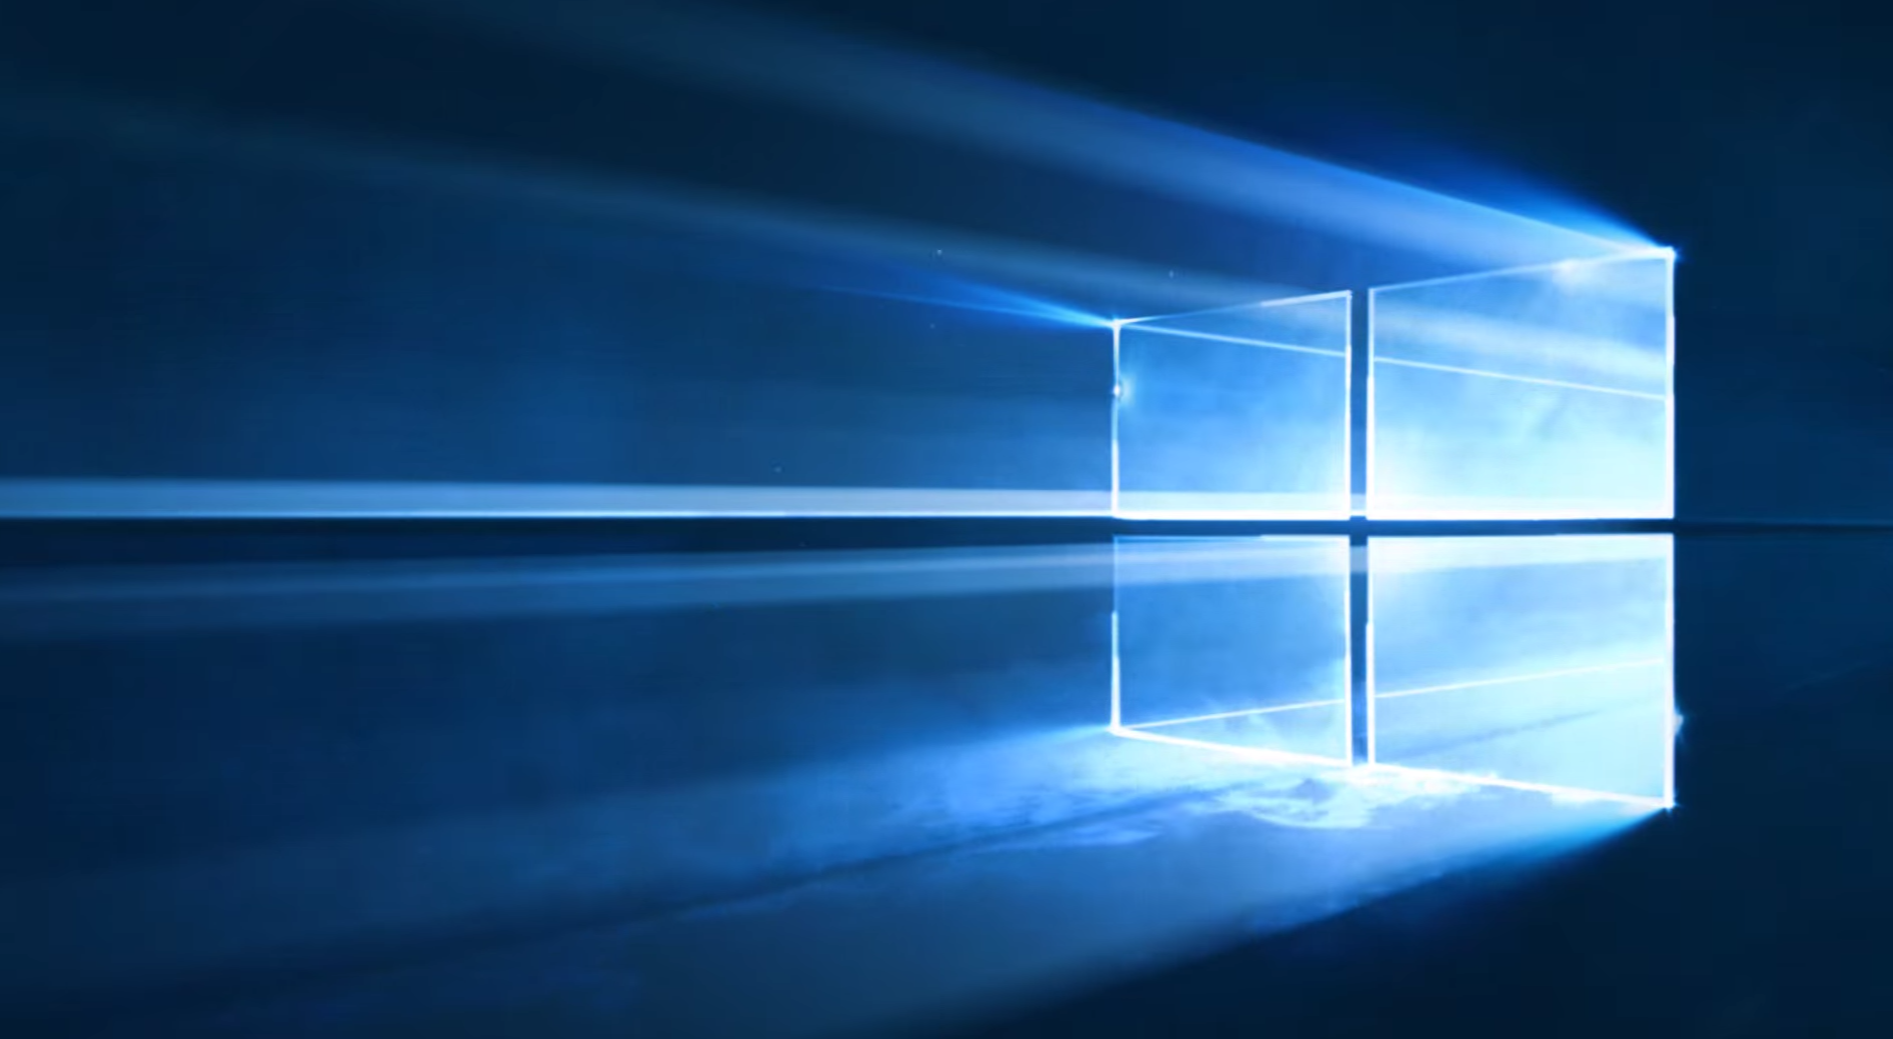 Windows 10's futuristic wallpaper was created with lasers, smoke machines, and crystal dust